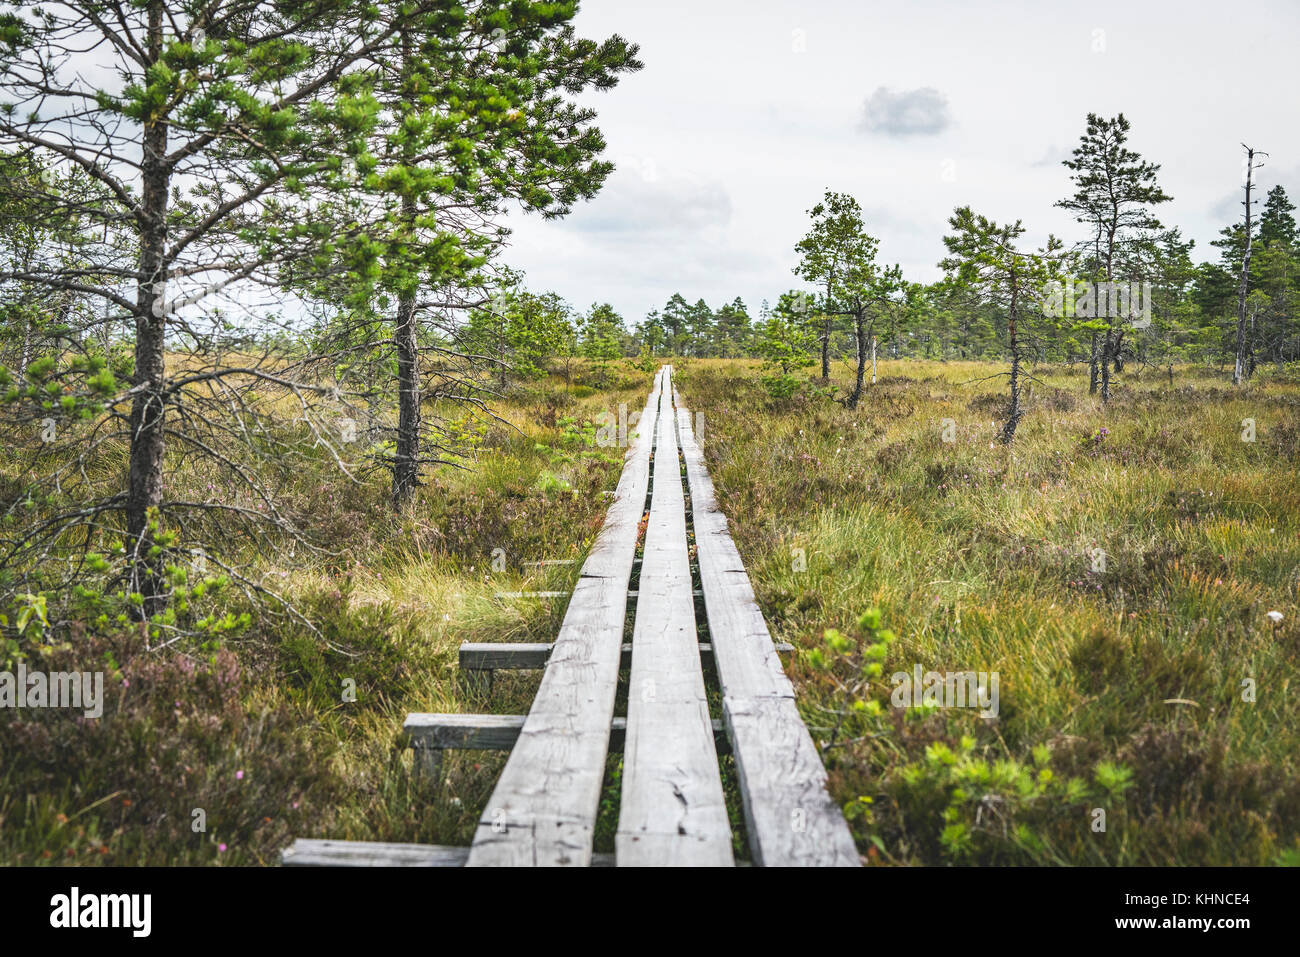 Wooden planks in wild nature with pine trees making a perfect nature trail in the wilderness - Stock Image